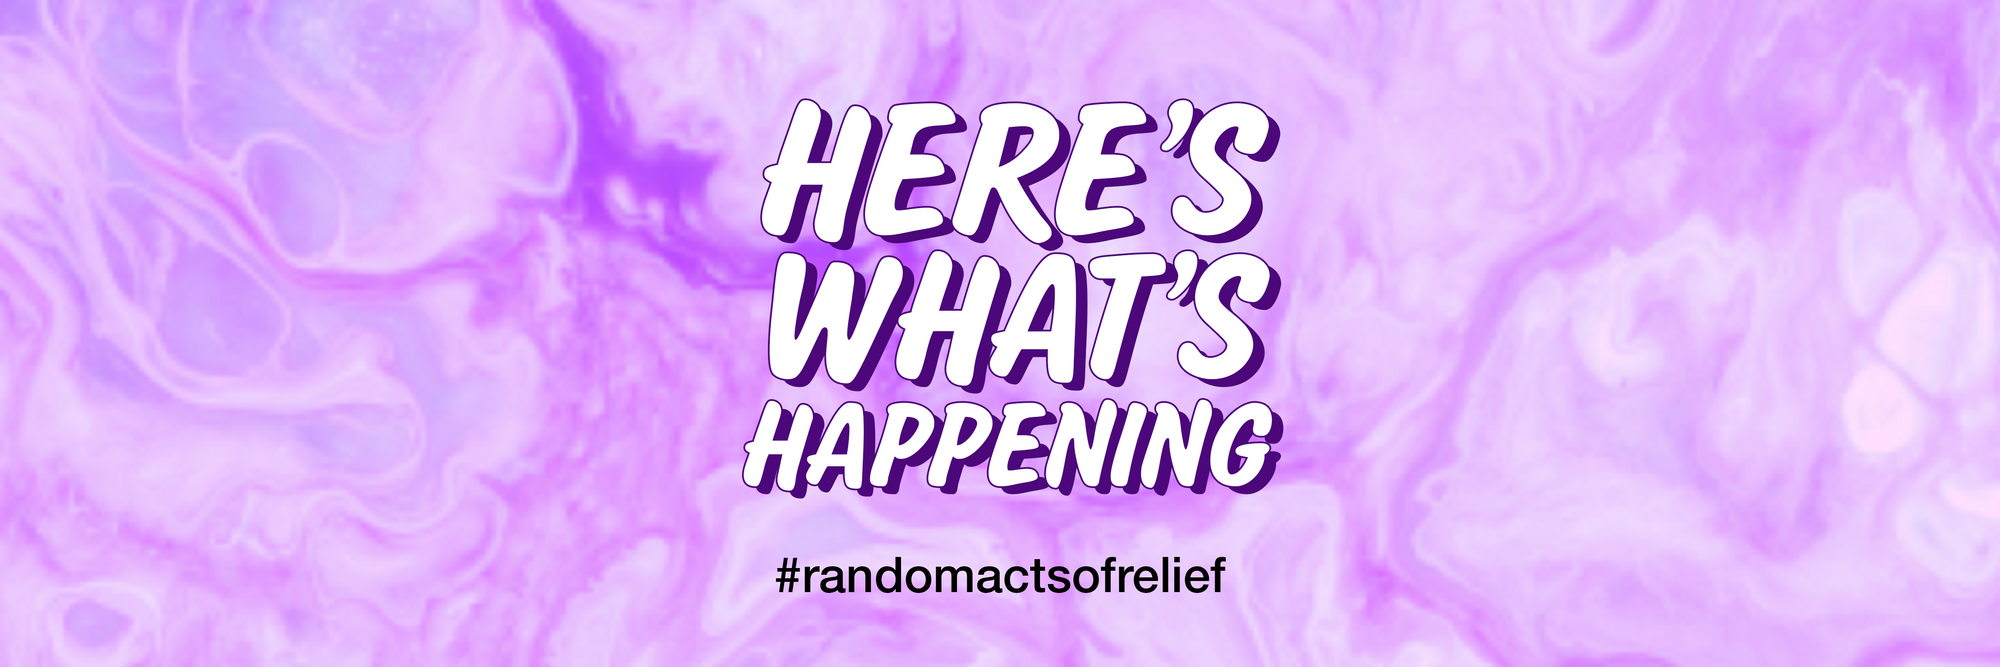 Random Acts of Relief, the story so far